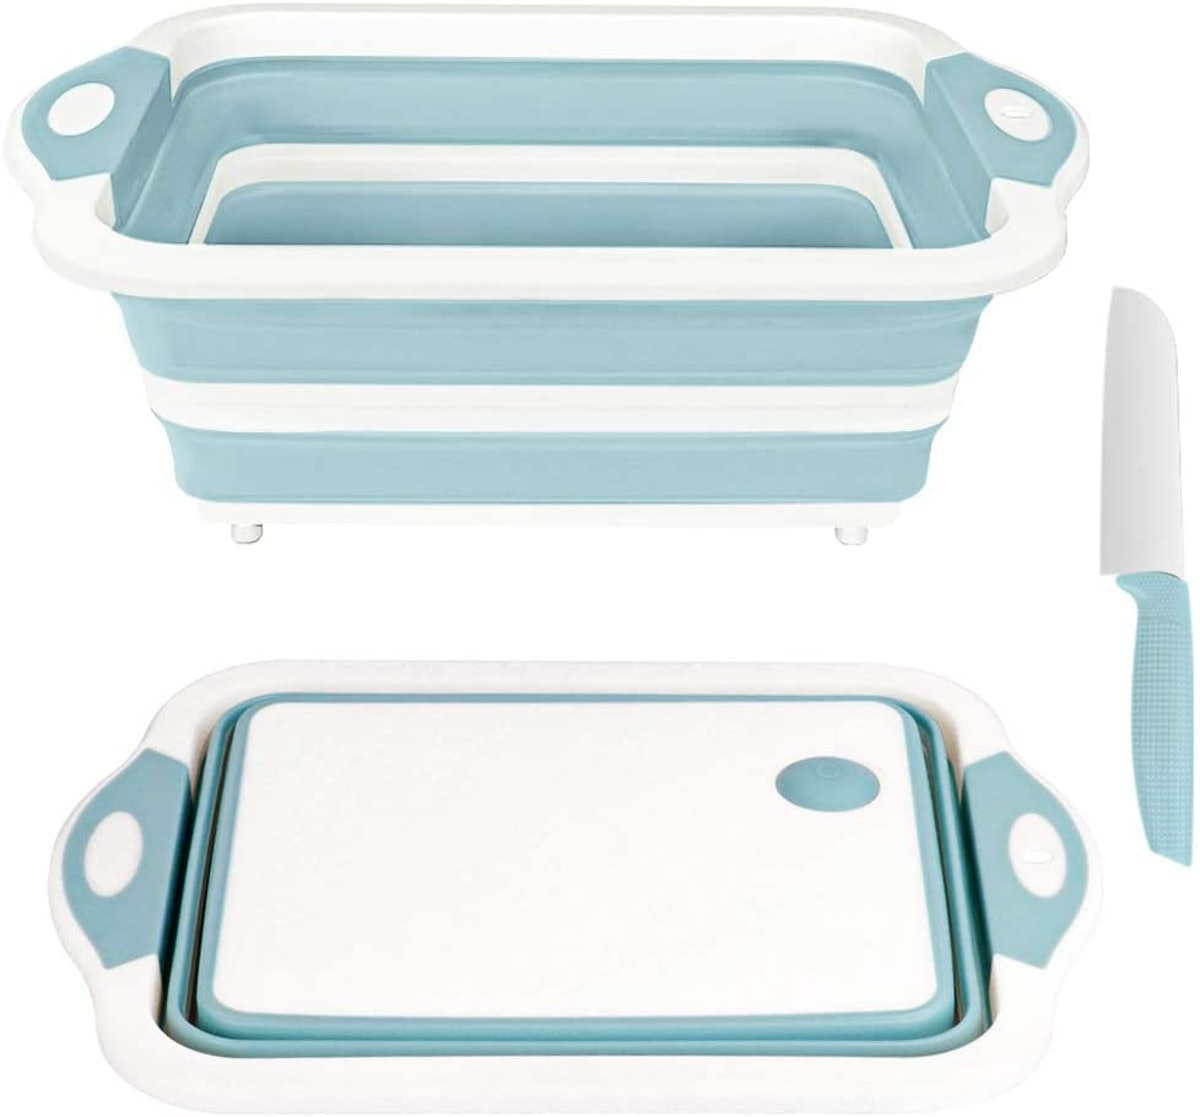 Rottogoon Collapsible Cutting Board